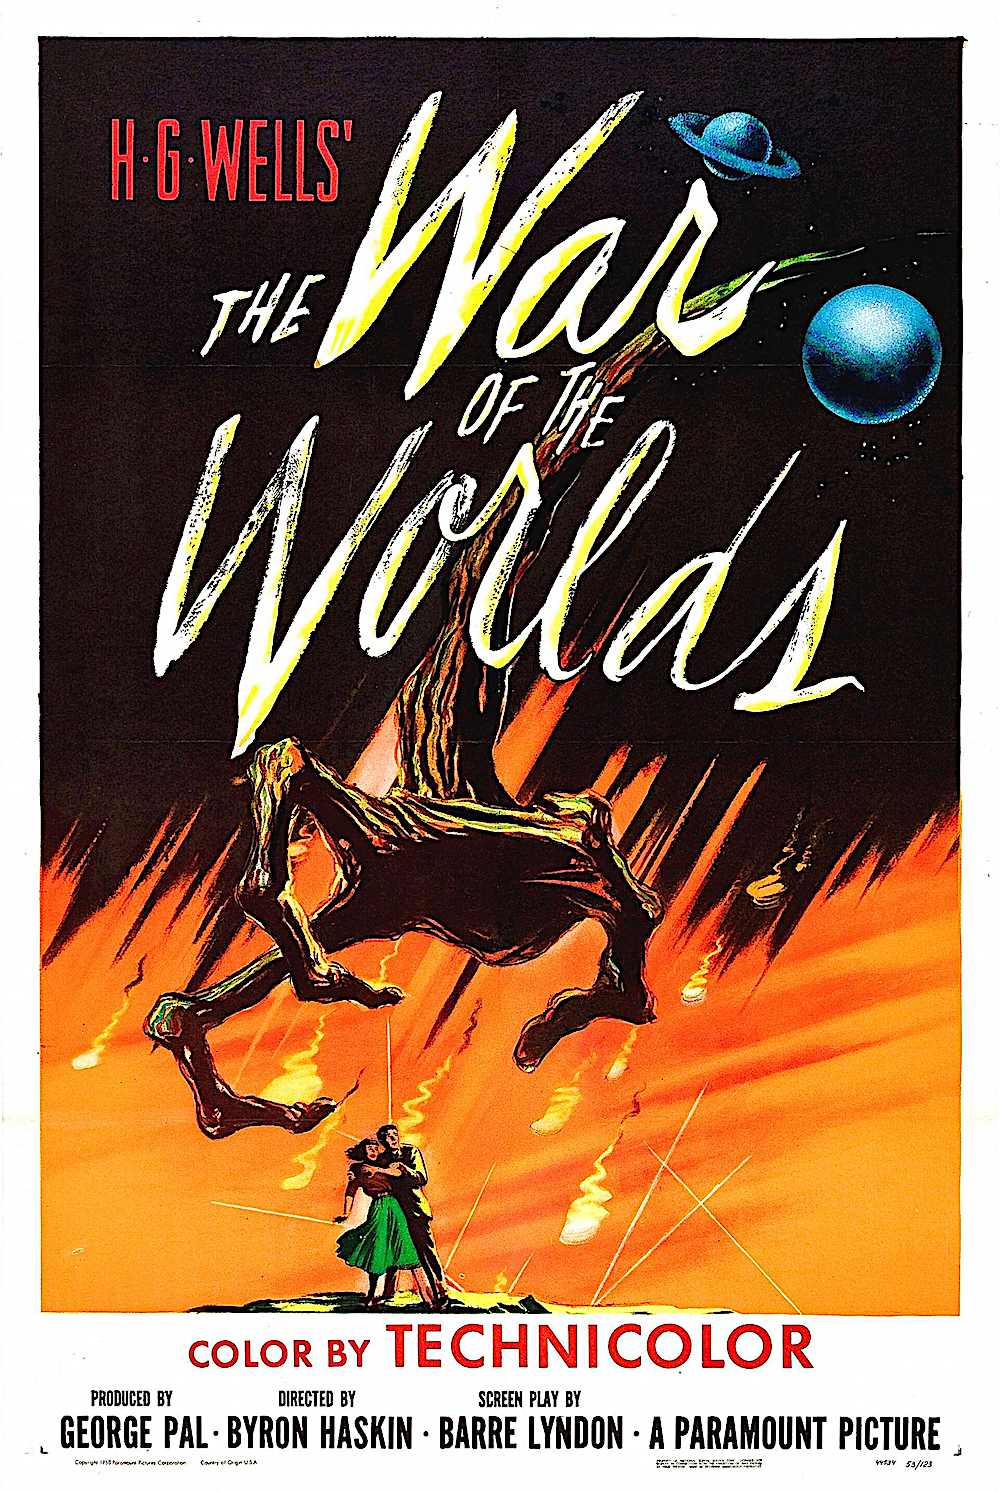 a poster for the 1953 film War Of The Worlds by H.G. Wells